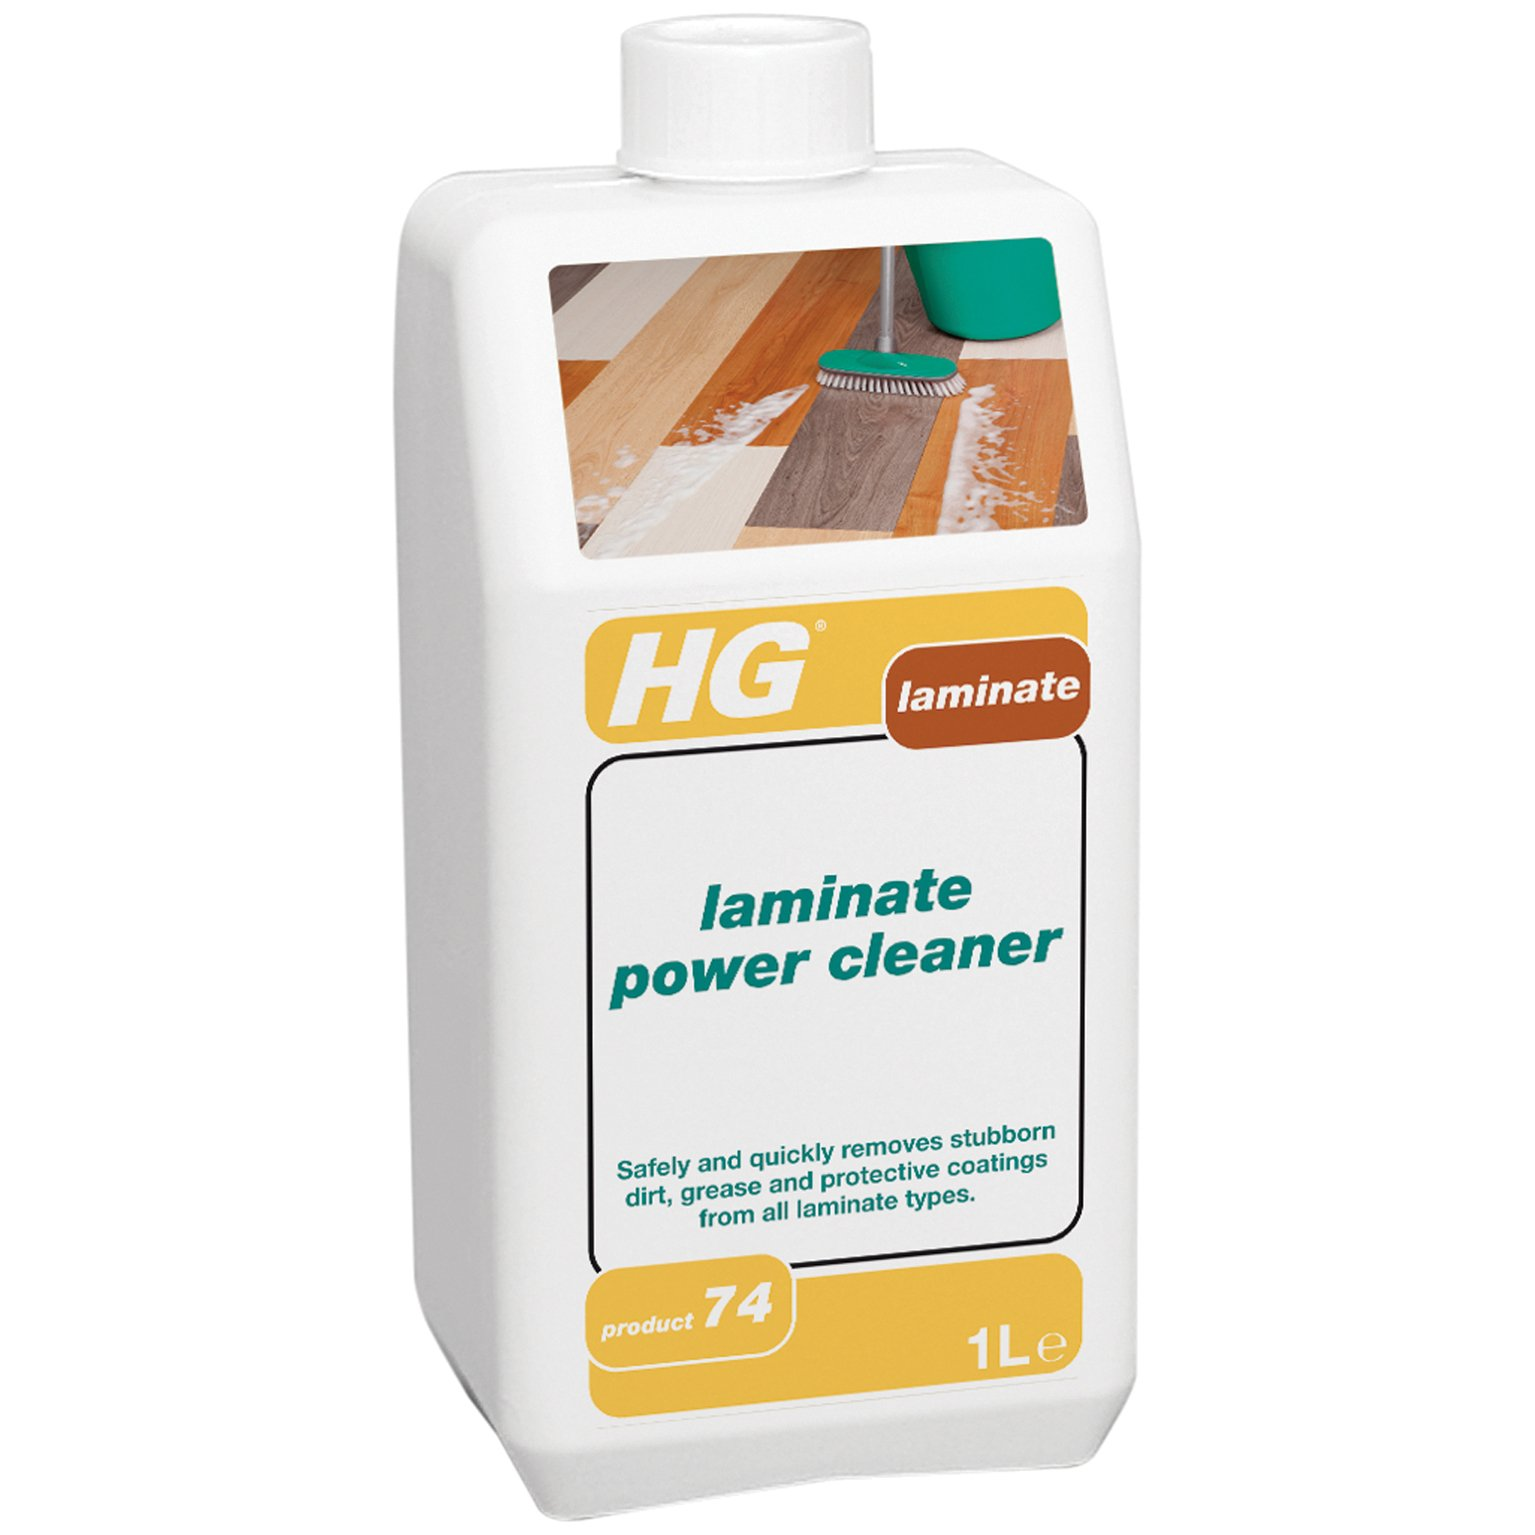 HG Laminate Power Cleaner HG Product 74